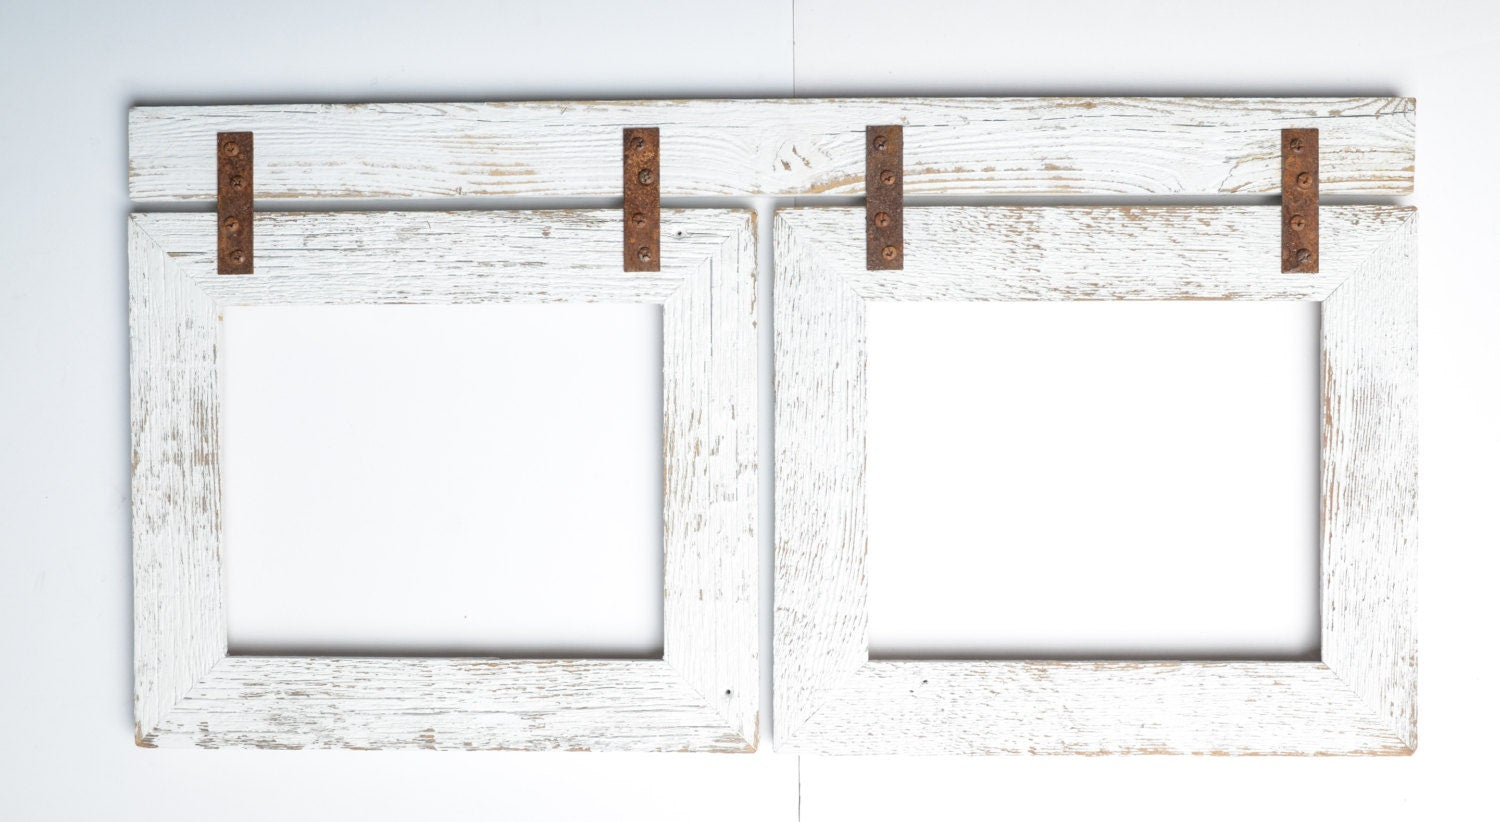 Barnwood Collage White Frame 2 11x14 Multi Opening Frame Rustic